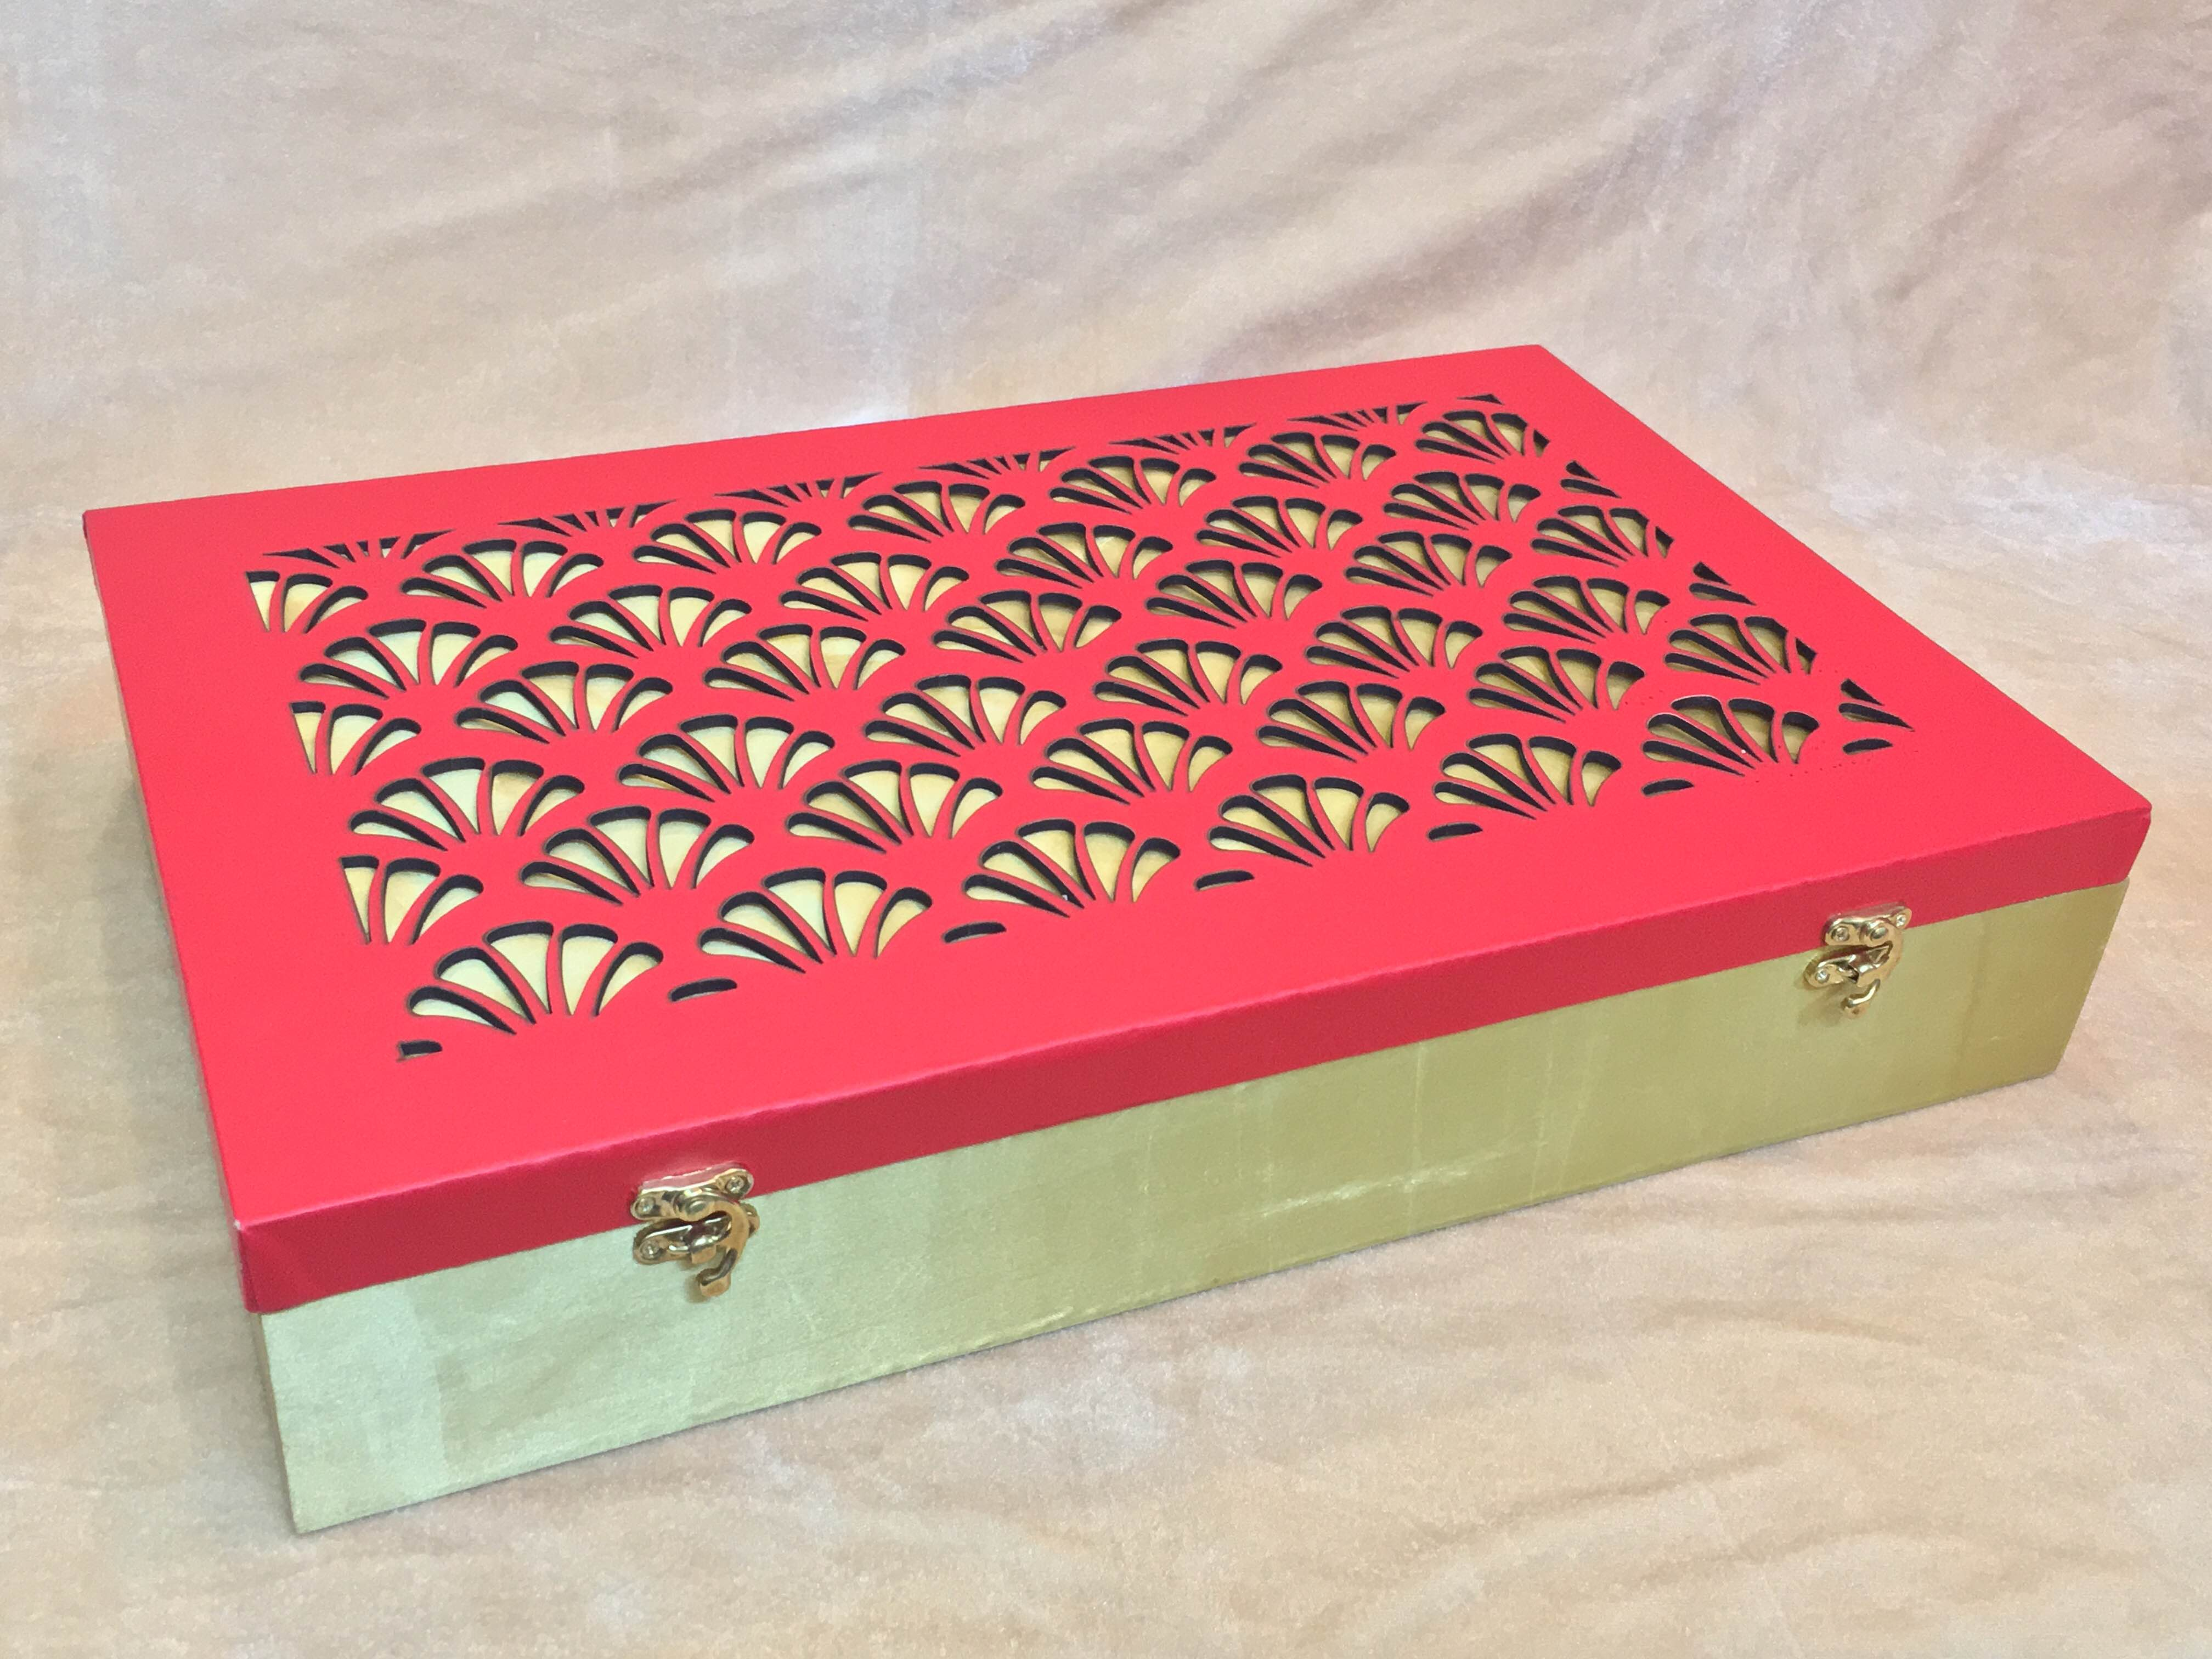 Saree Gift Boxes   We are leading manufacturer, supplier and wholesaler of Saree Gift Boxes in Delhi